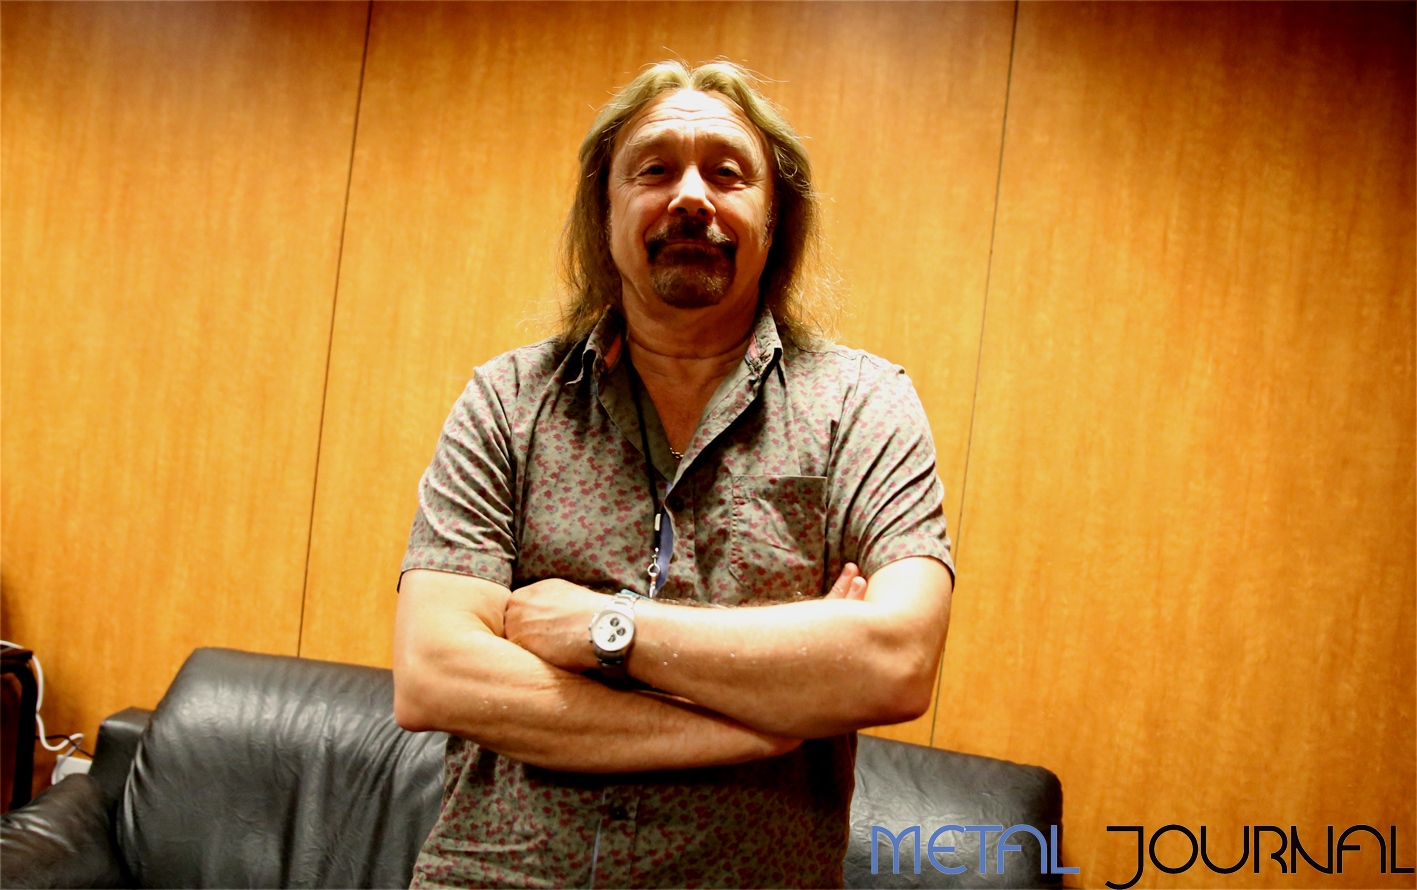 ian hill judas priest - metal journal pic 1